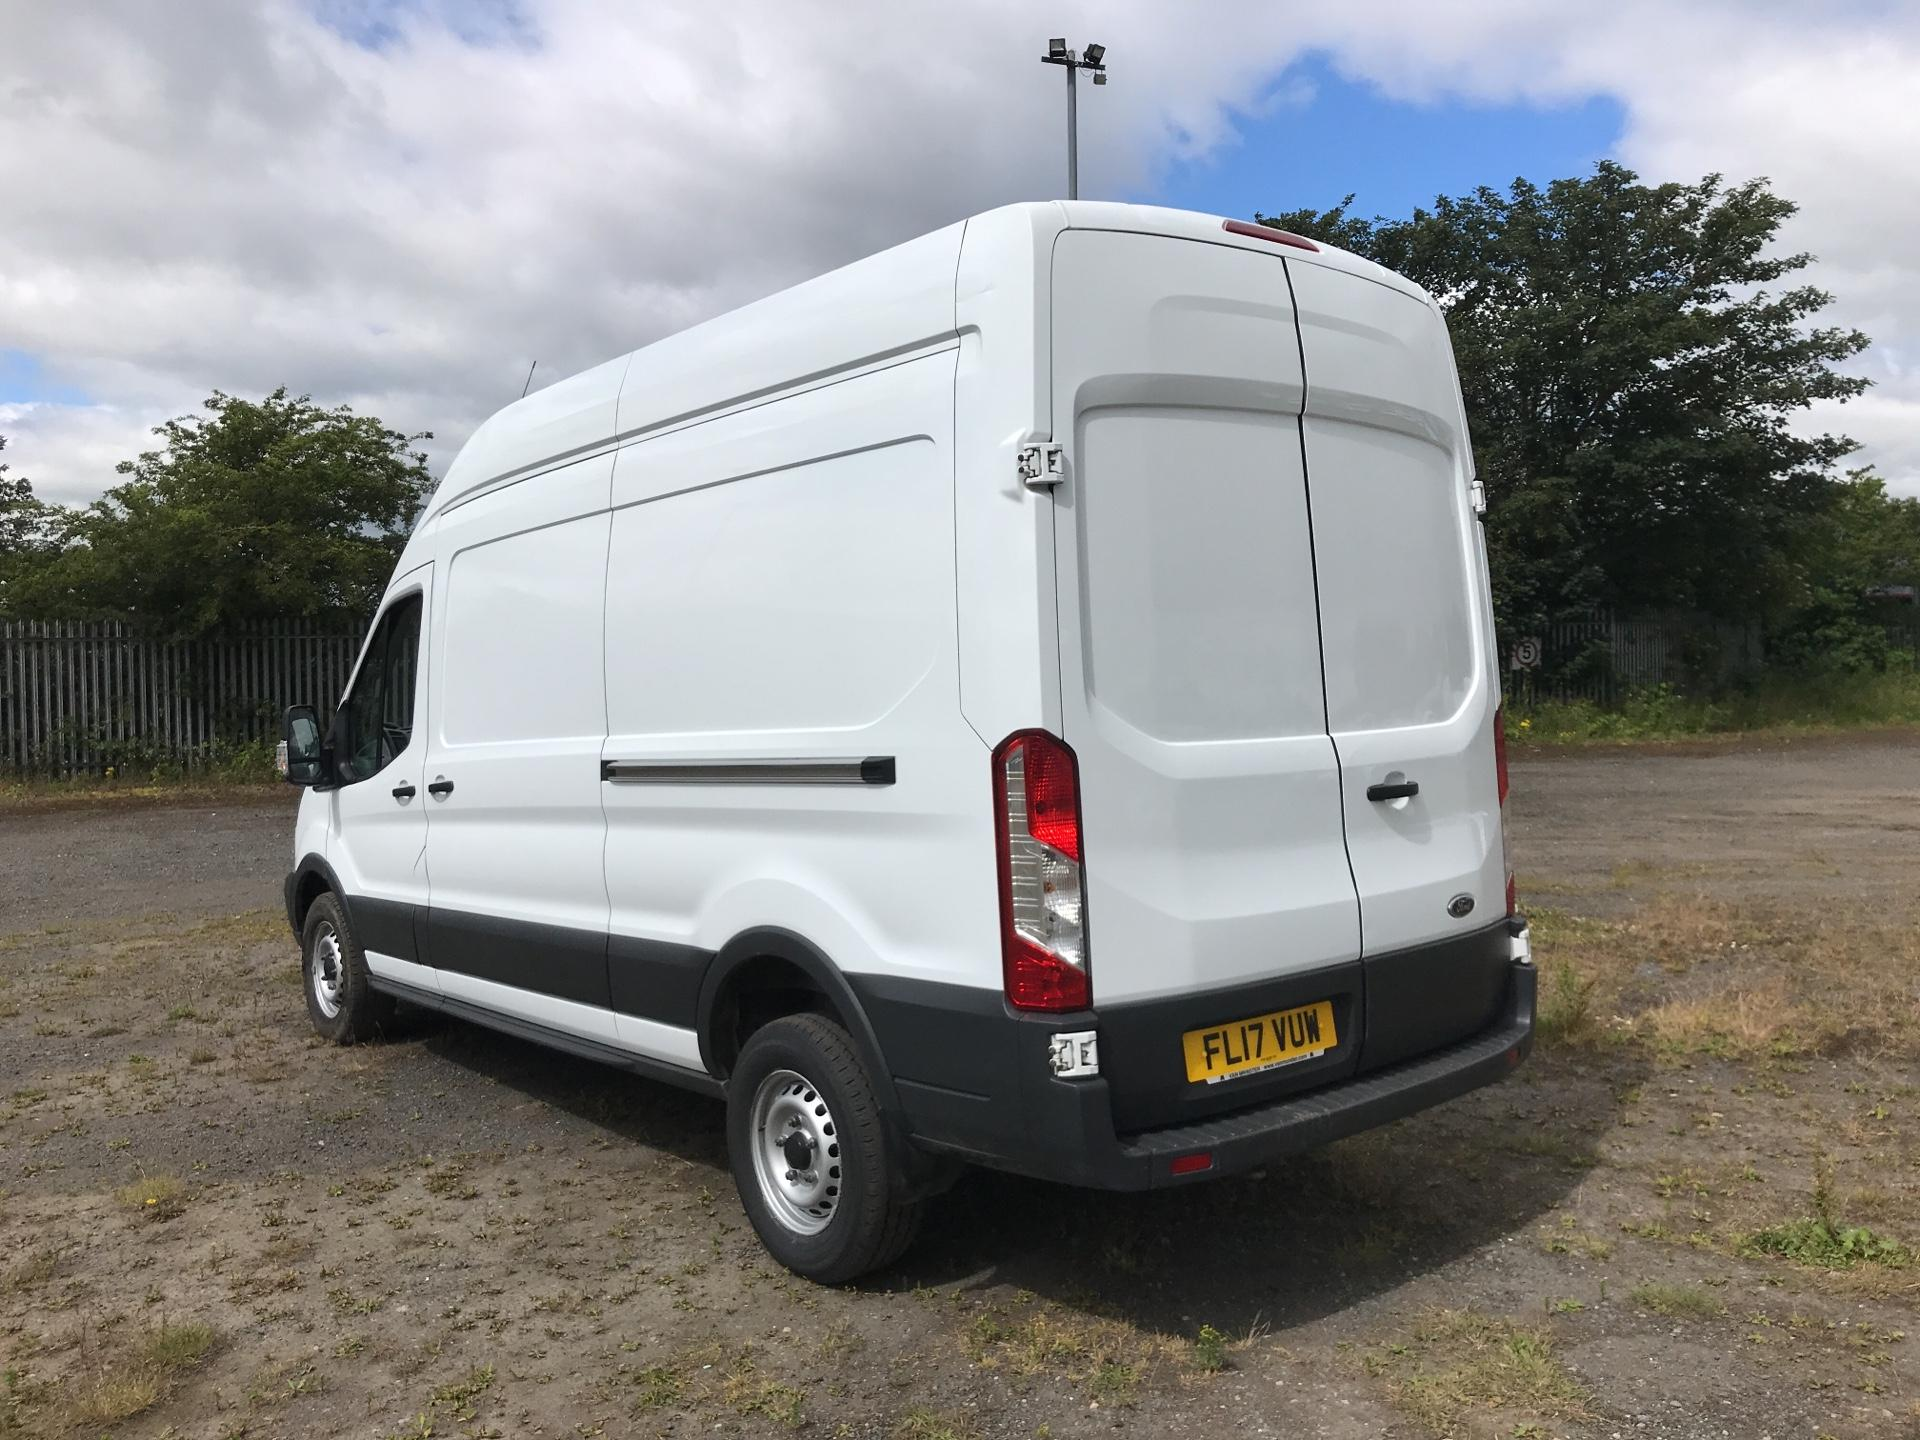 2017 Ford Transit 2.0 Tdci 130Ps H3 Van *VALUE RANGE VEHICLE CONDITION REFLECTED IN PRICE* (FL17VUW) Image 5